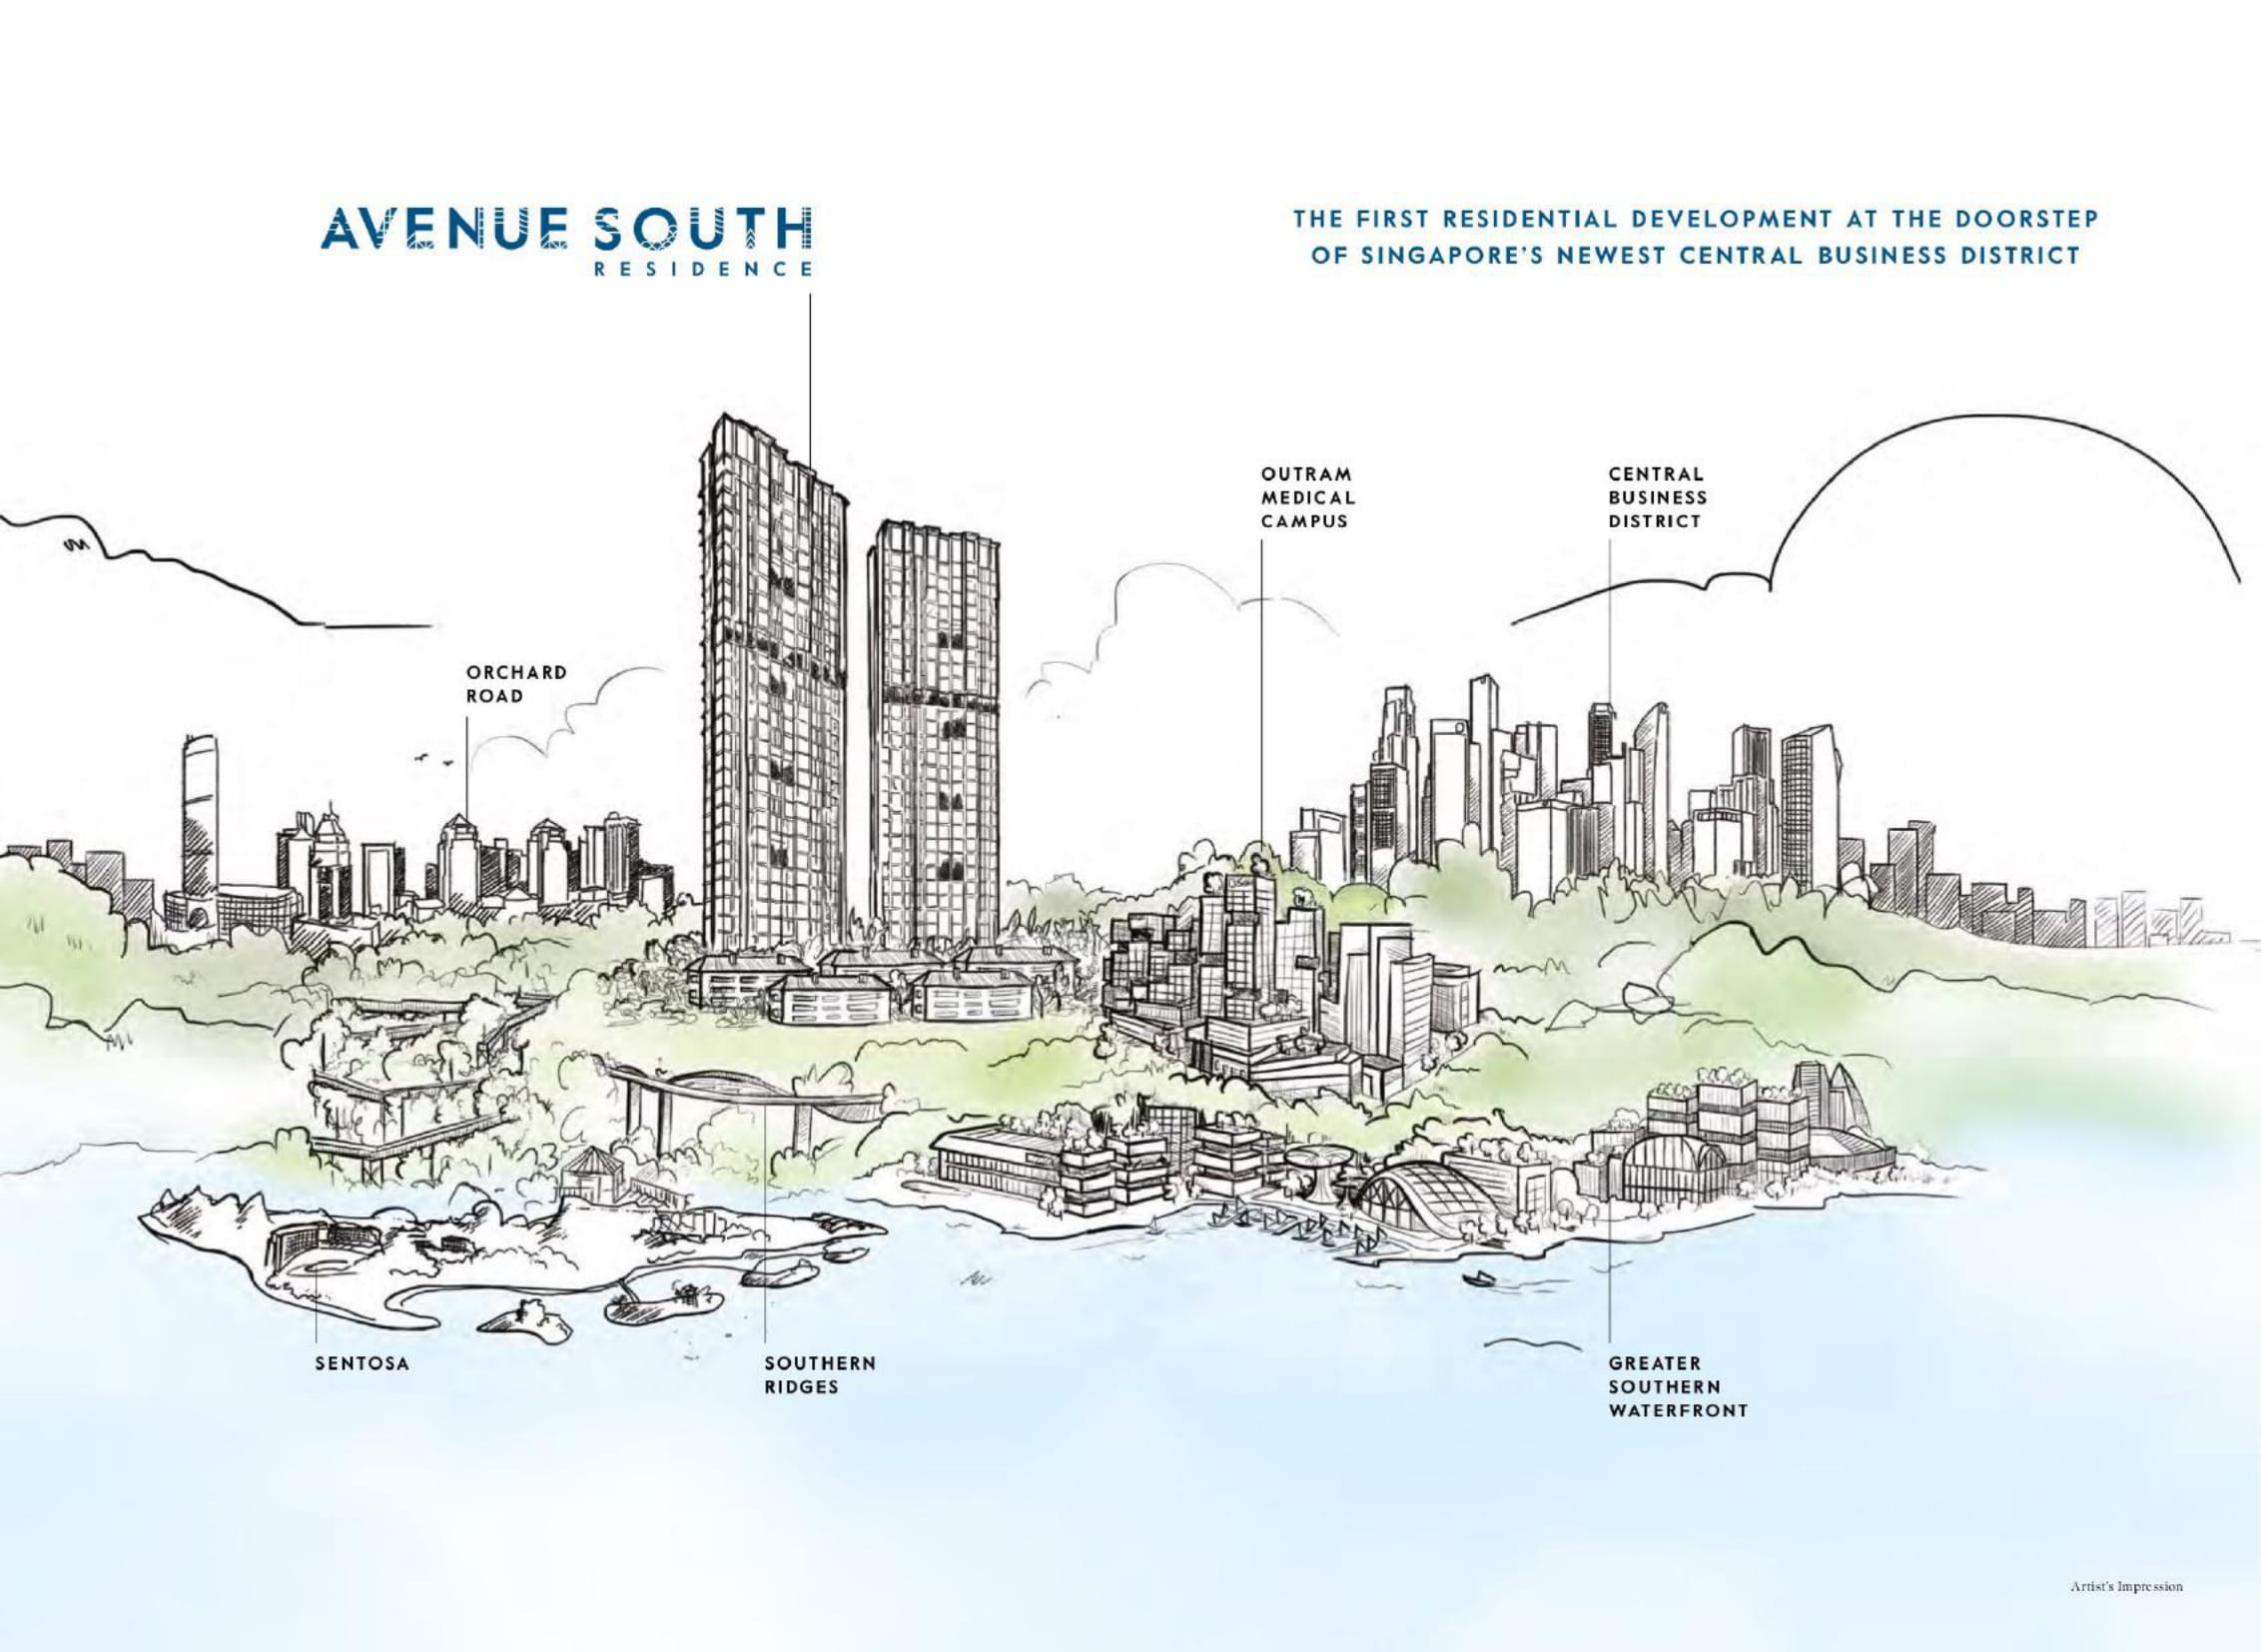 Avenue South Residence's position, site plan, and facilities